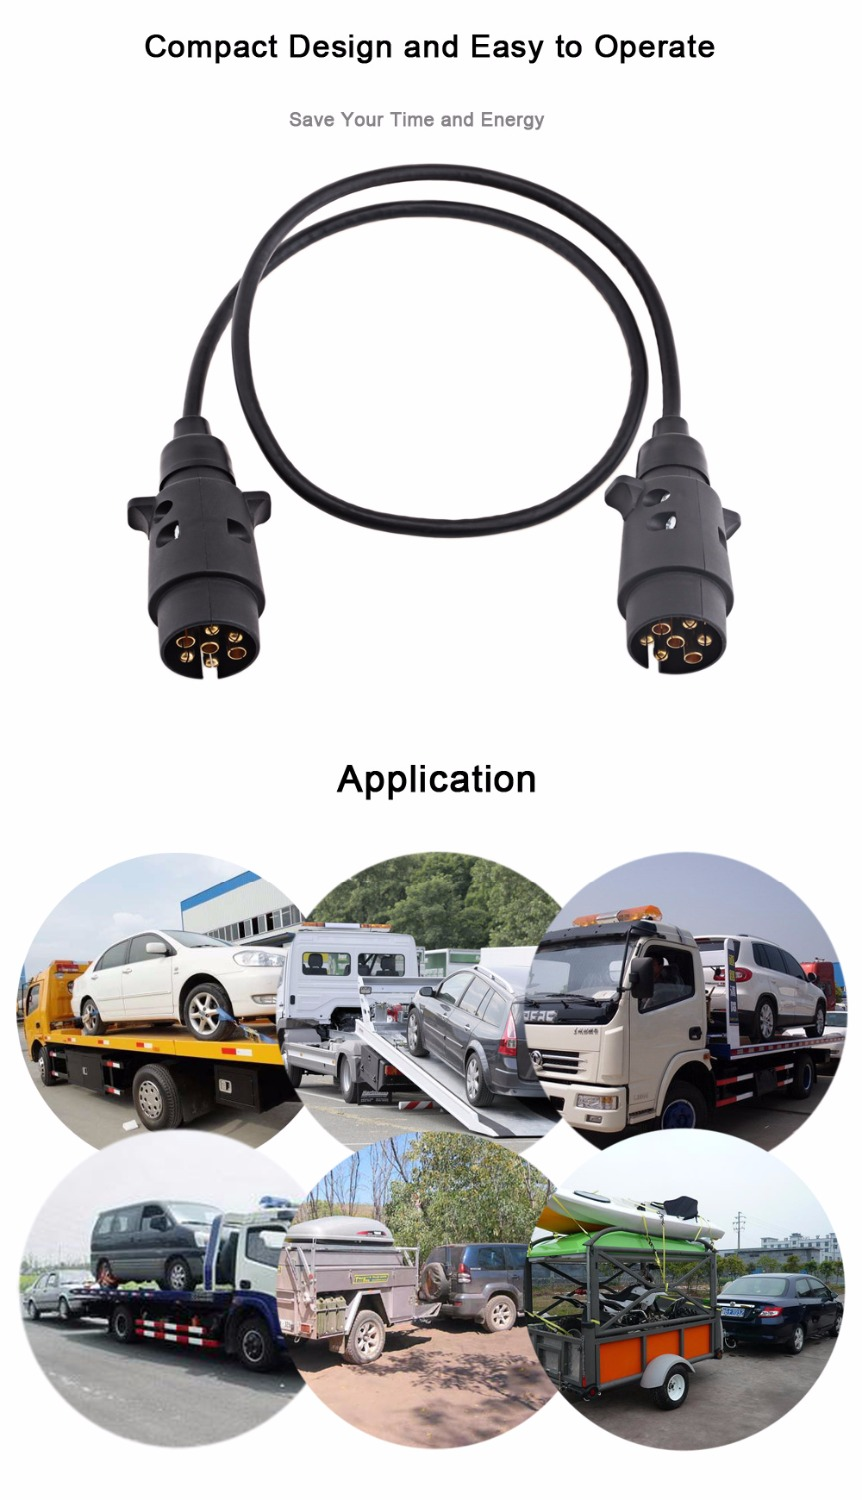 Trailer Wiring Connector N Type Aluminum 7 Pin T23487 Plastic Plug 82cm Black Spring Extension Cable For European Vehicles In Cables Adapters Commercial Motor Sockets